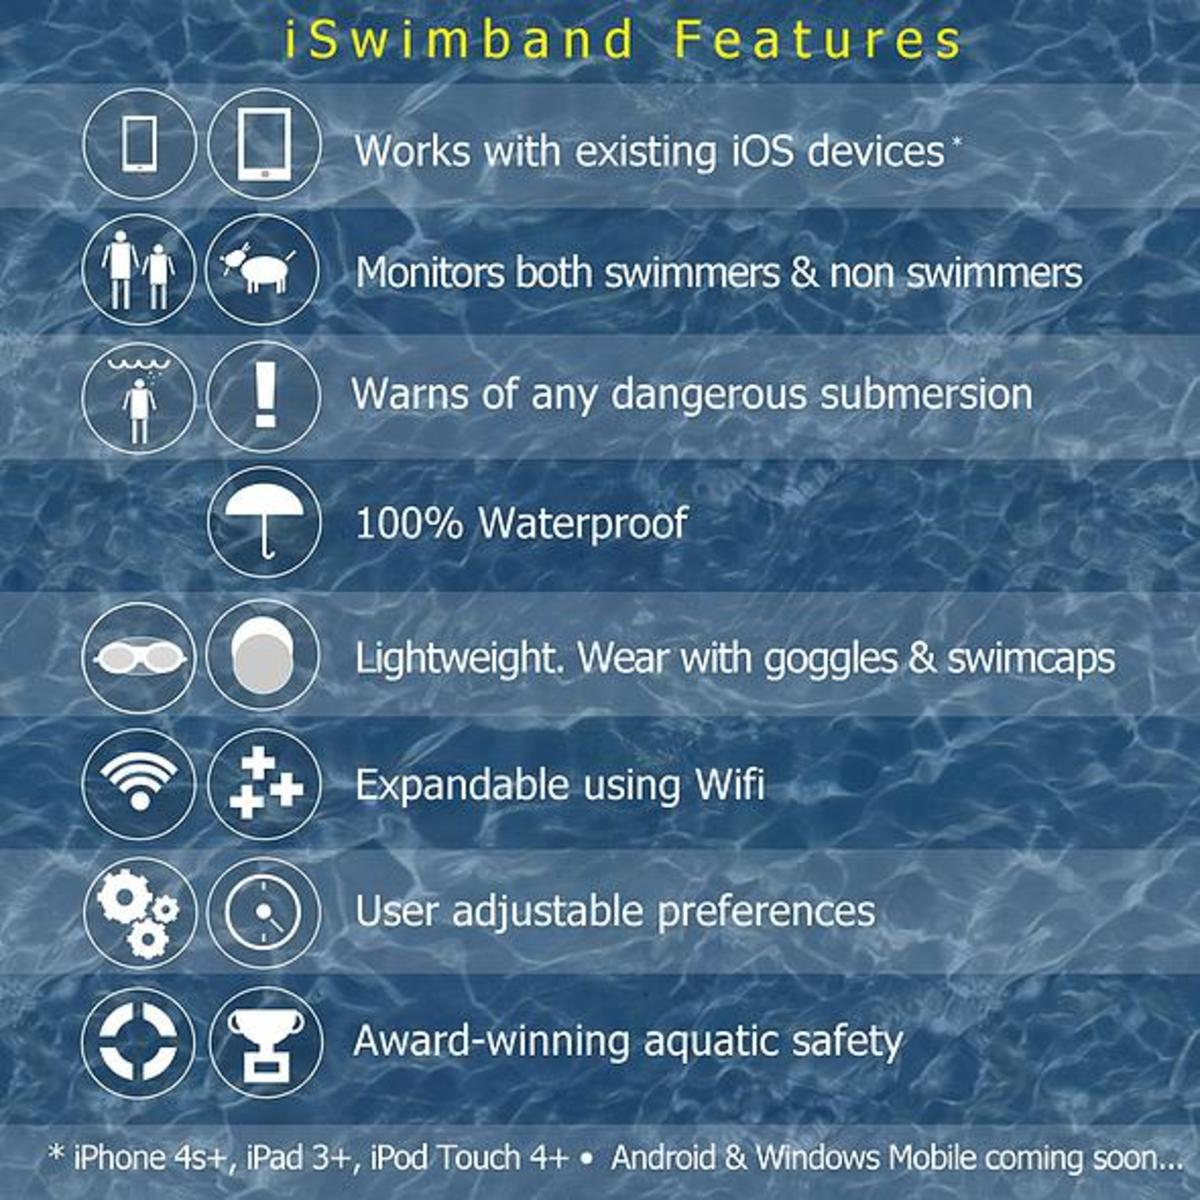 iswimband_features